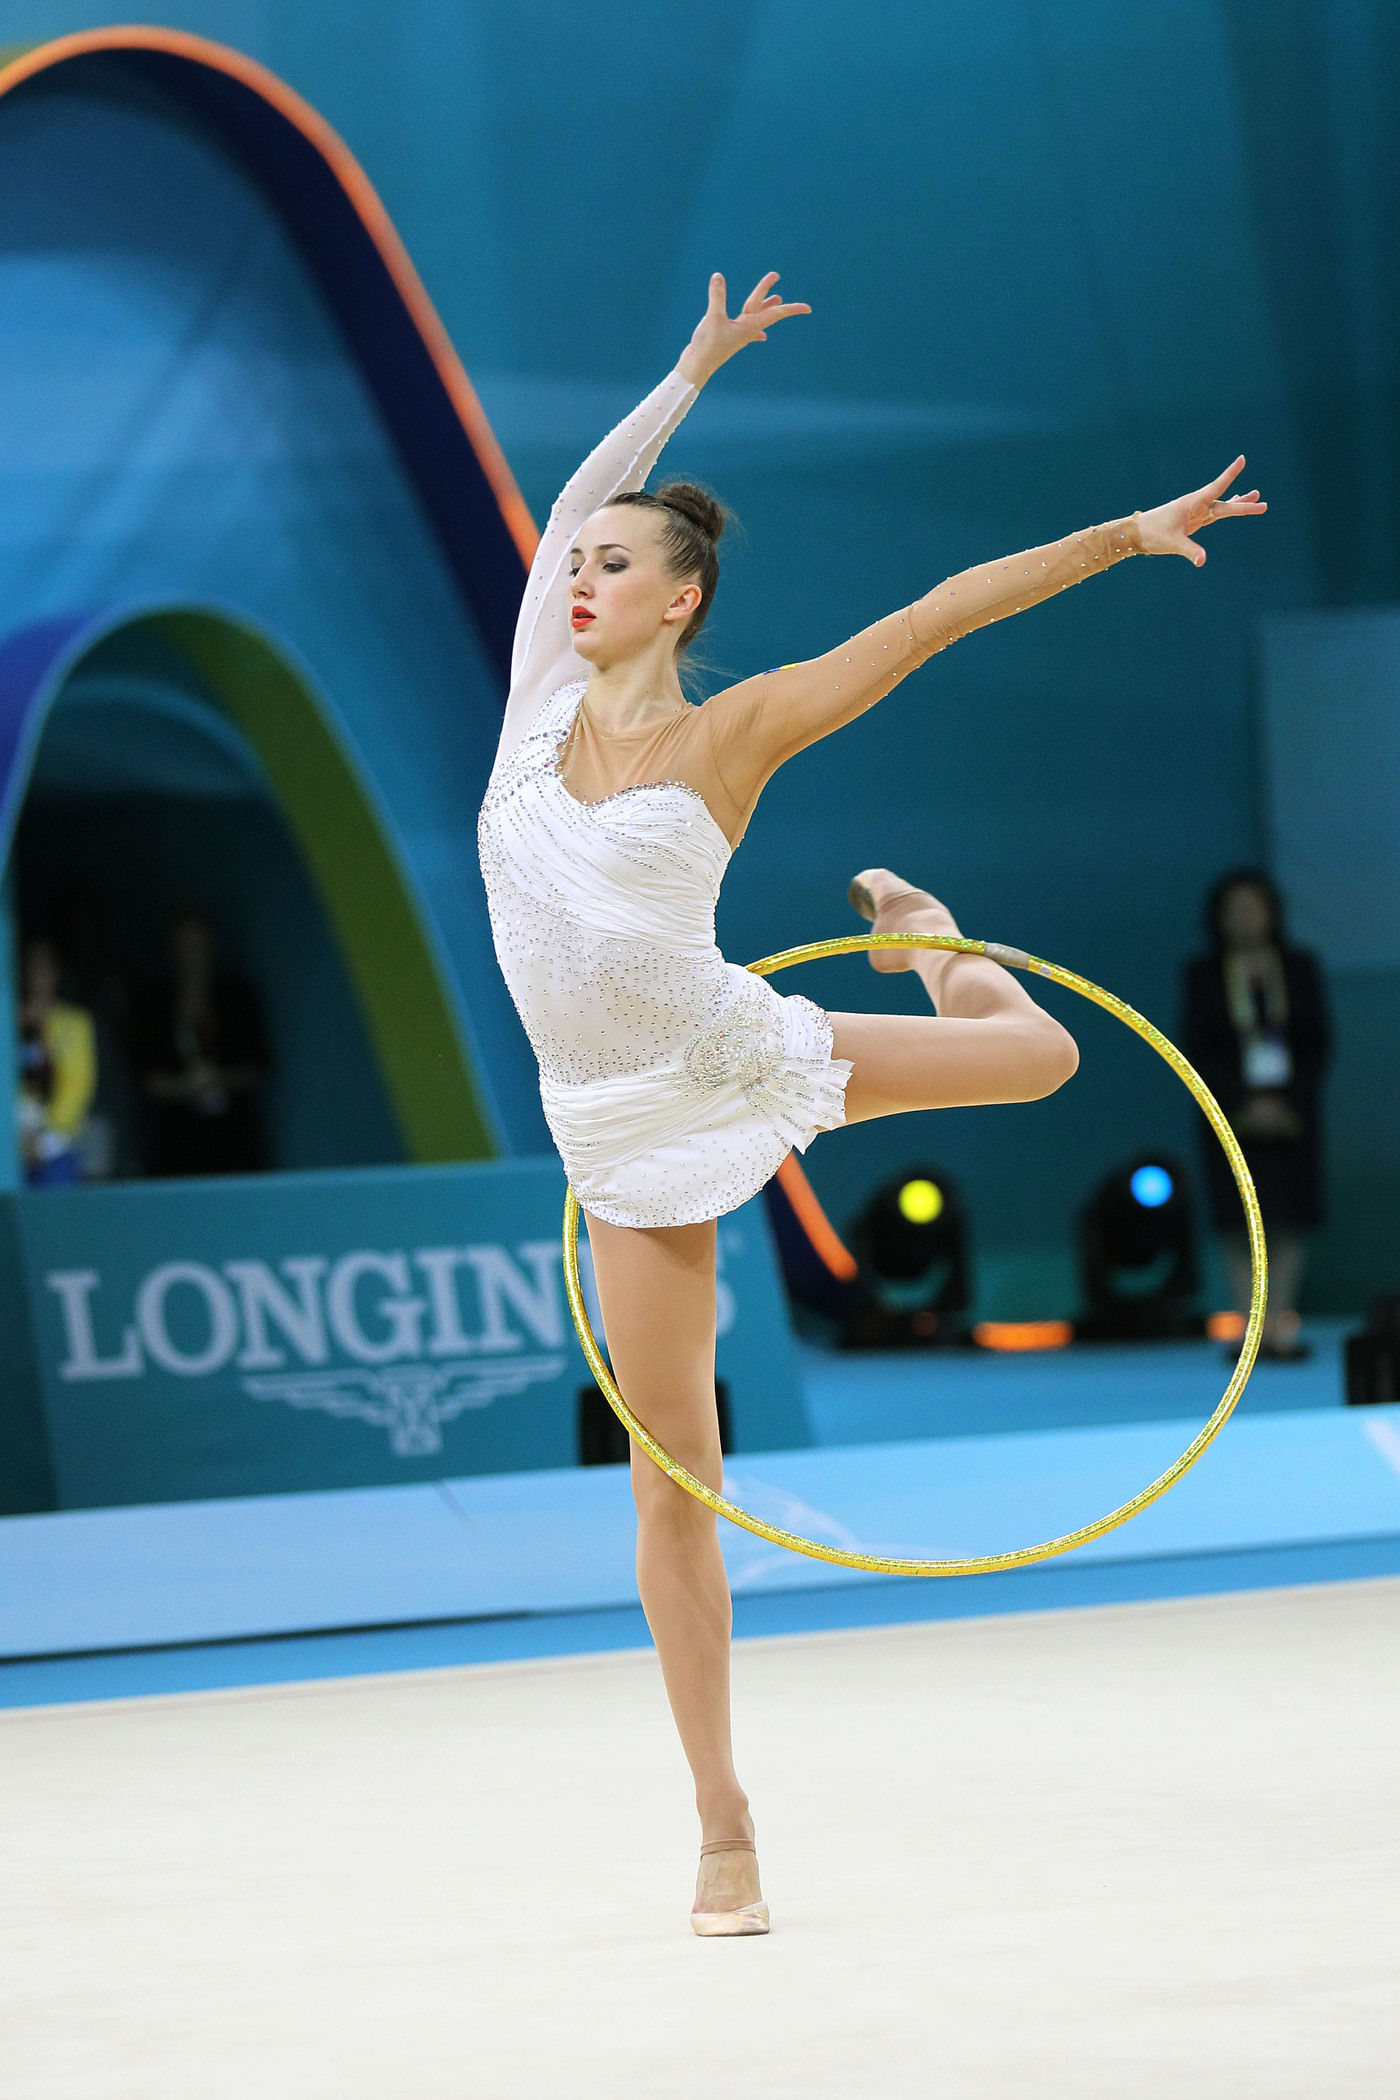 Longines Gymnastics Event: Ukrainian gymnast Ganna Rizatdinova receives the Longines Prize for Elegance in Kiev 4